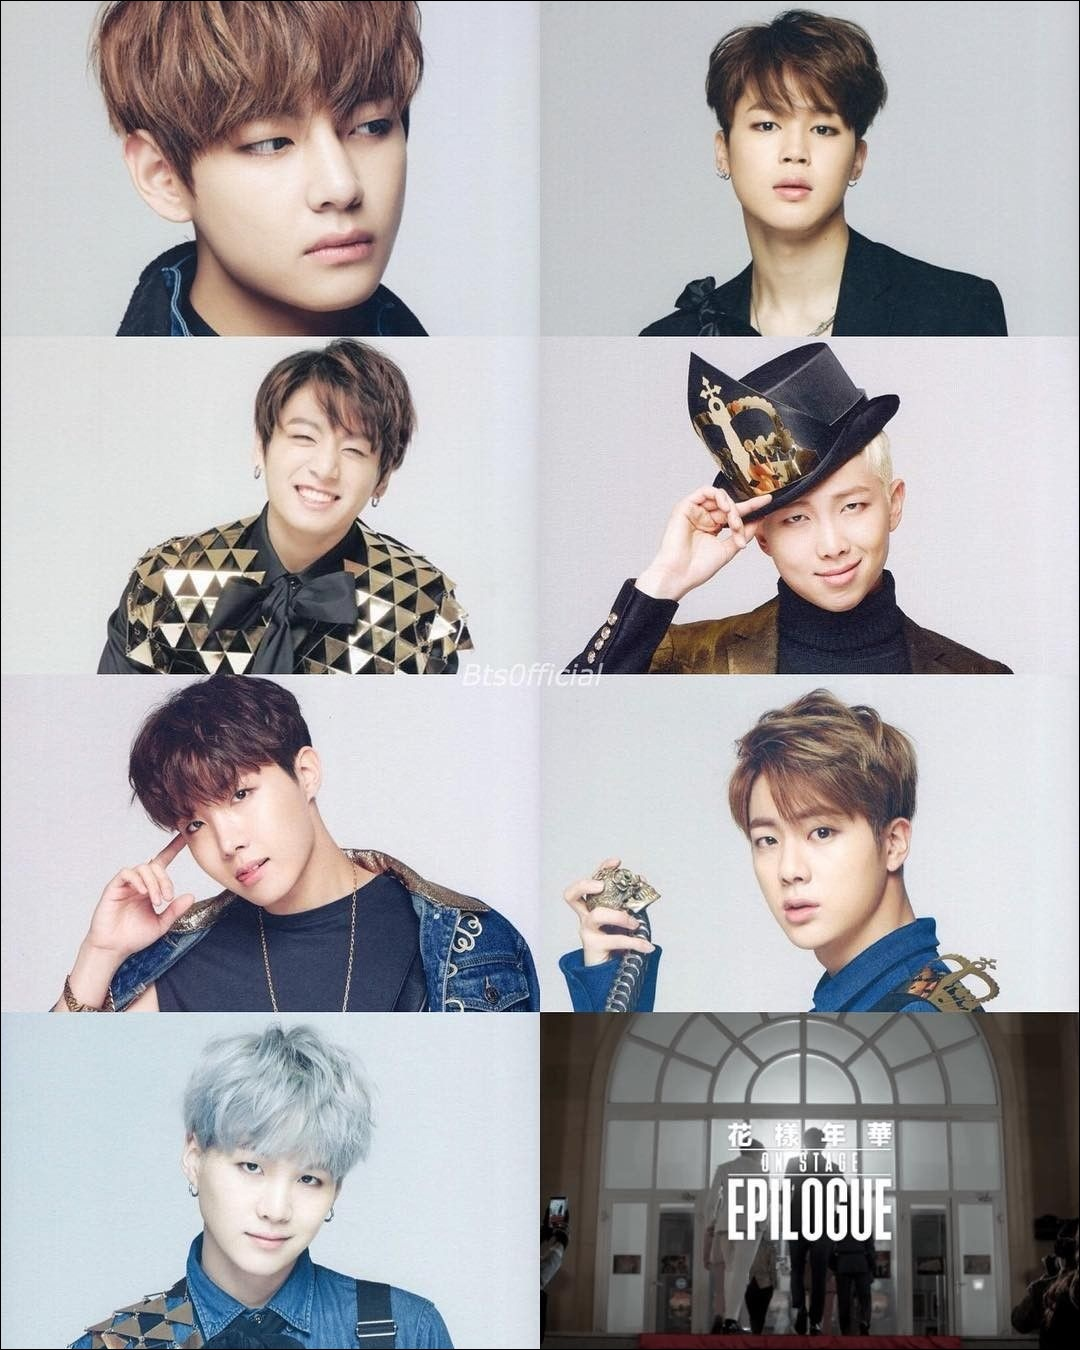 Hd Picture Bts Wallpaper Kpop Army Gallery Wallpapers Collage